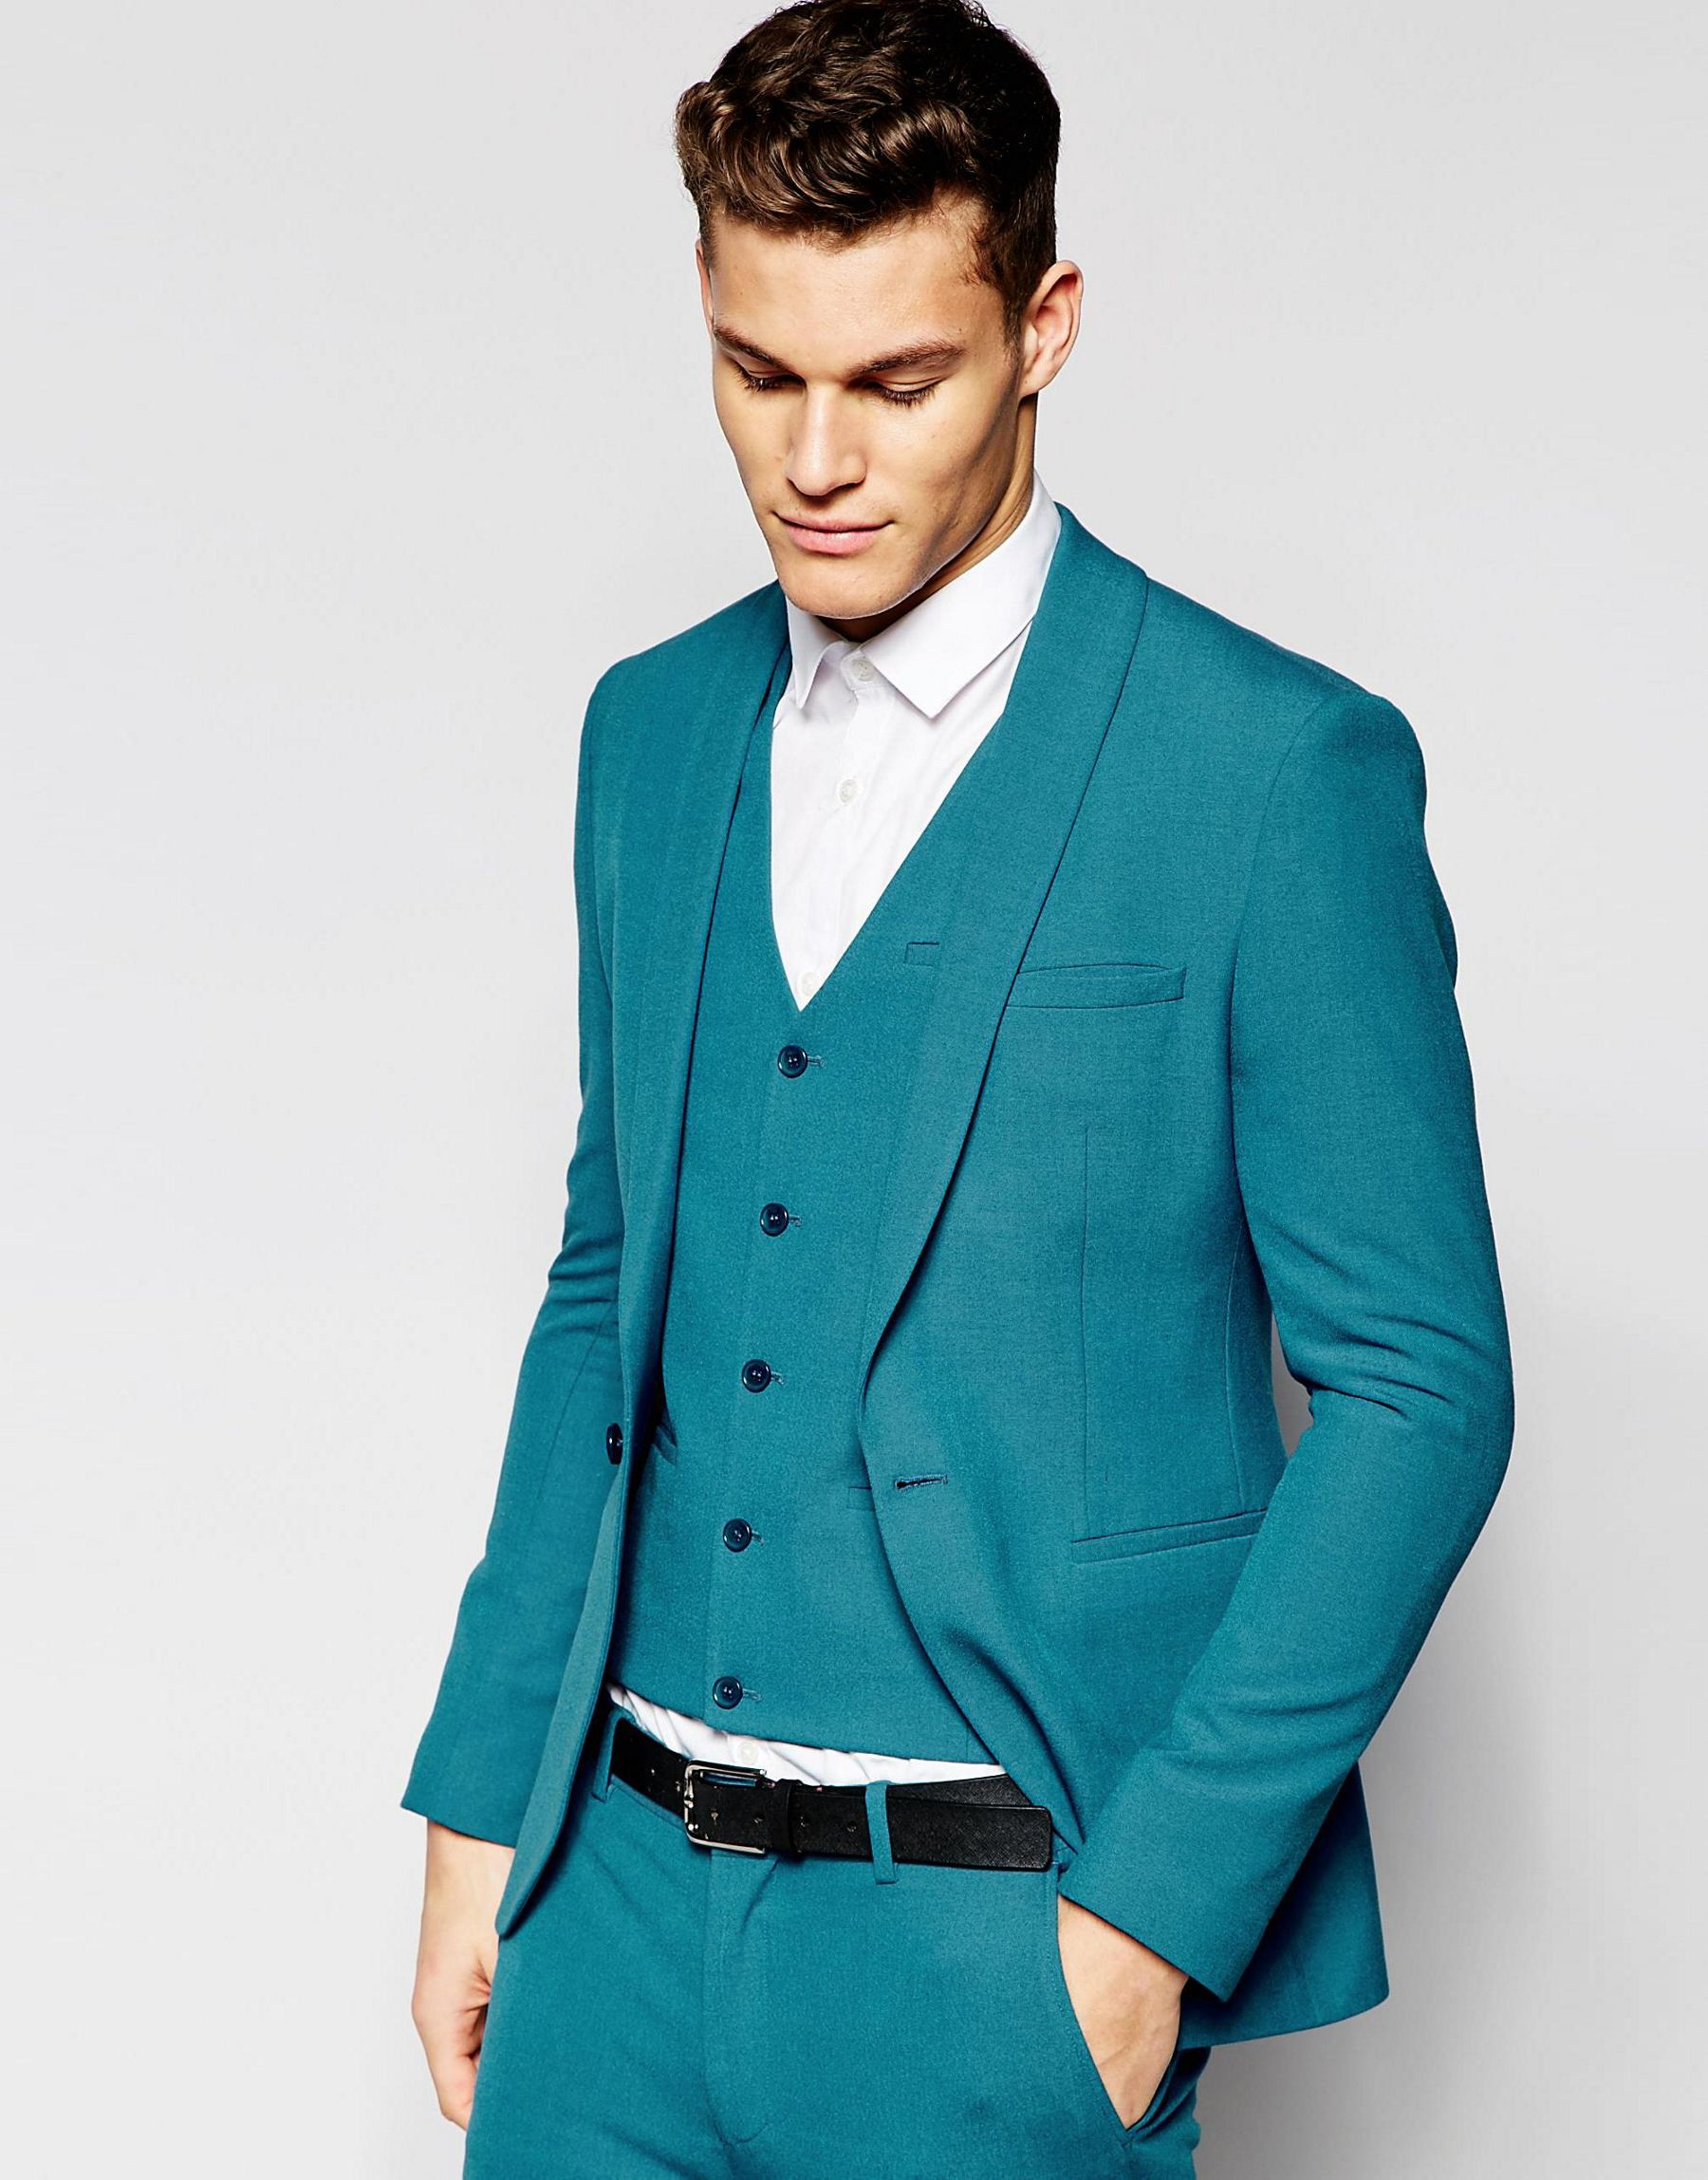 Lyst - Asos Super Skinny Suit Jacket In Turquoise in Green for Men